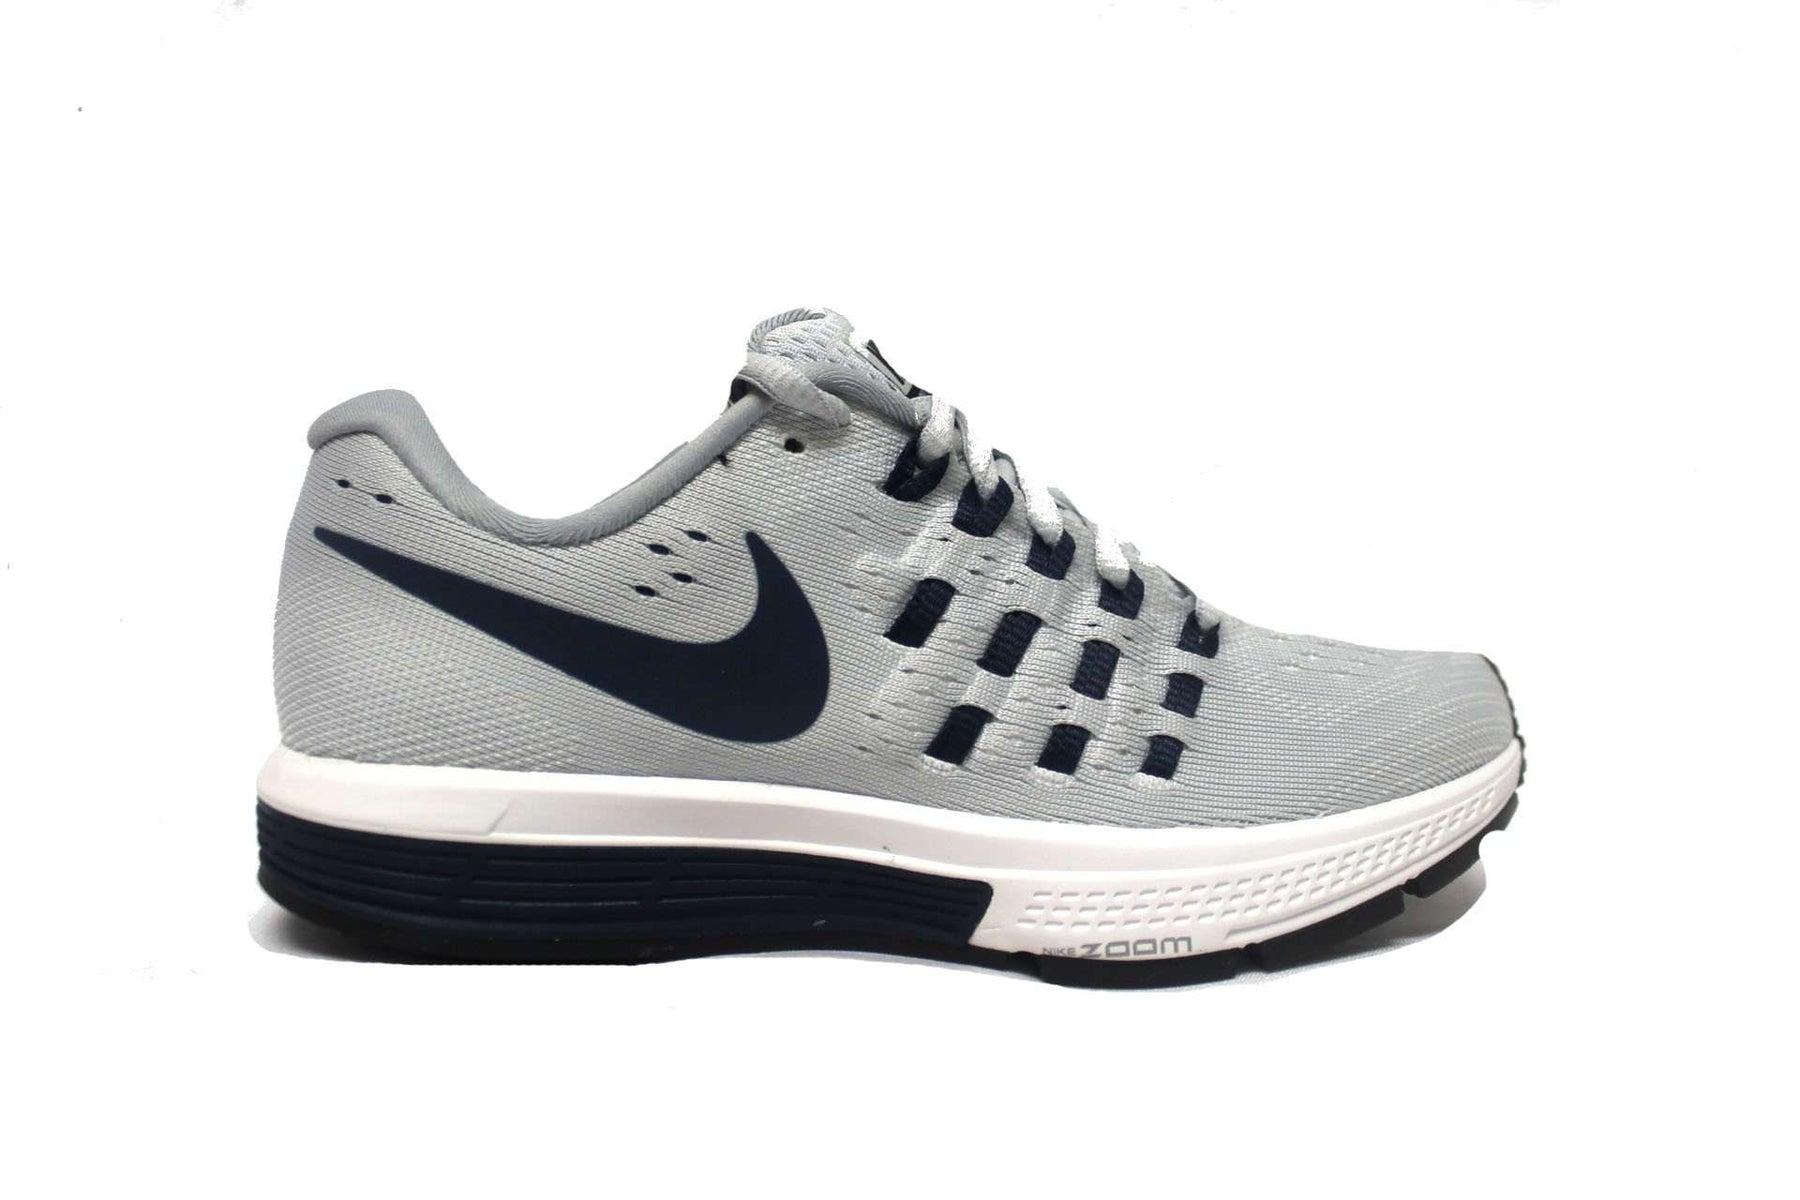 shop for best Sales promotion select for clearance Nike Air Zoom Vomero 11 Men's Running Shoes